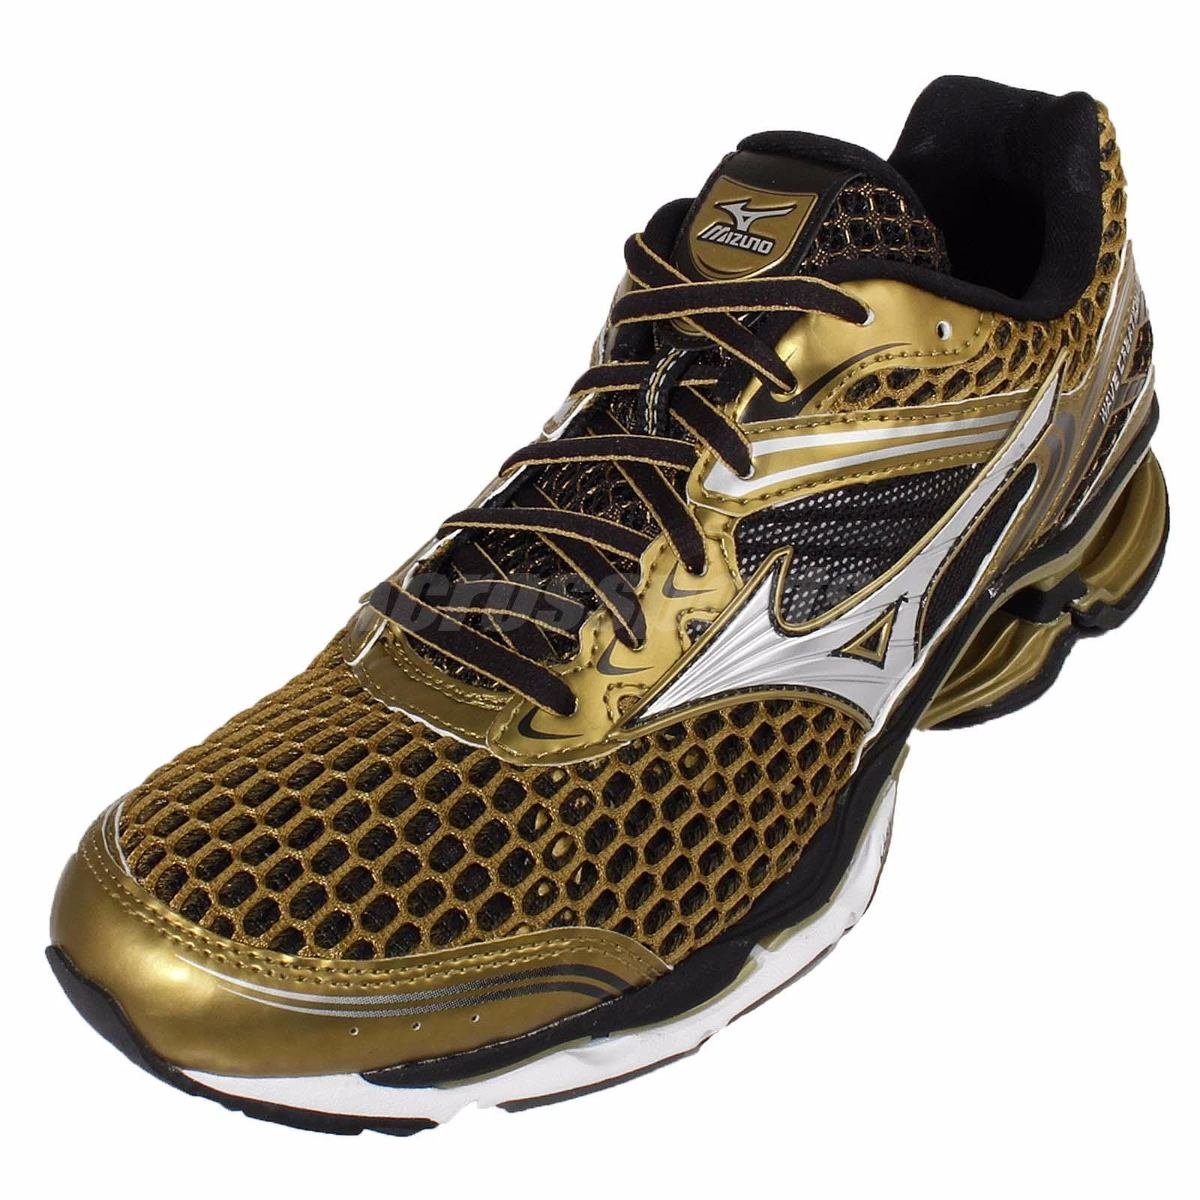 mizuno wave creation 17 original golden run ediçao limitada. Carregando  zoom. 1b69325ad222d